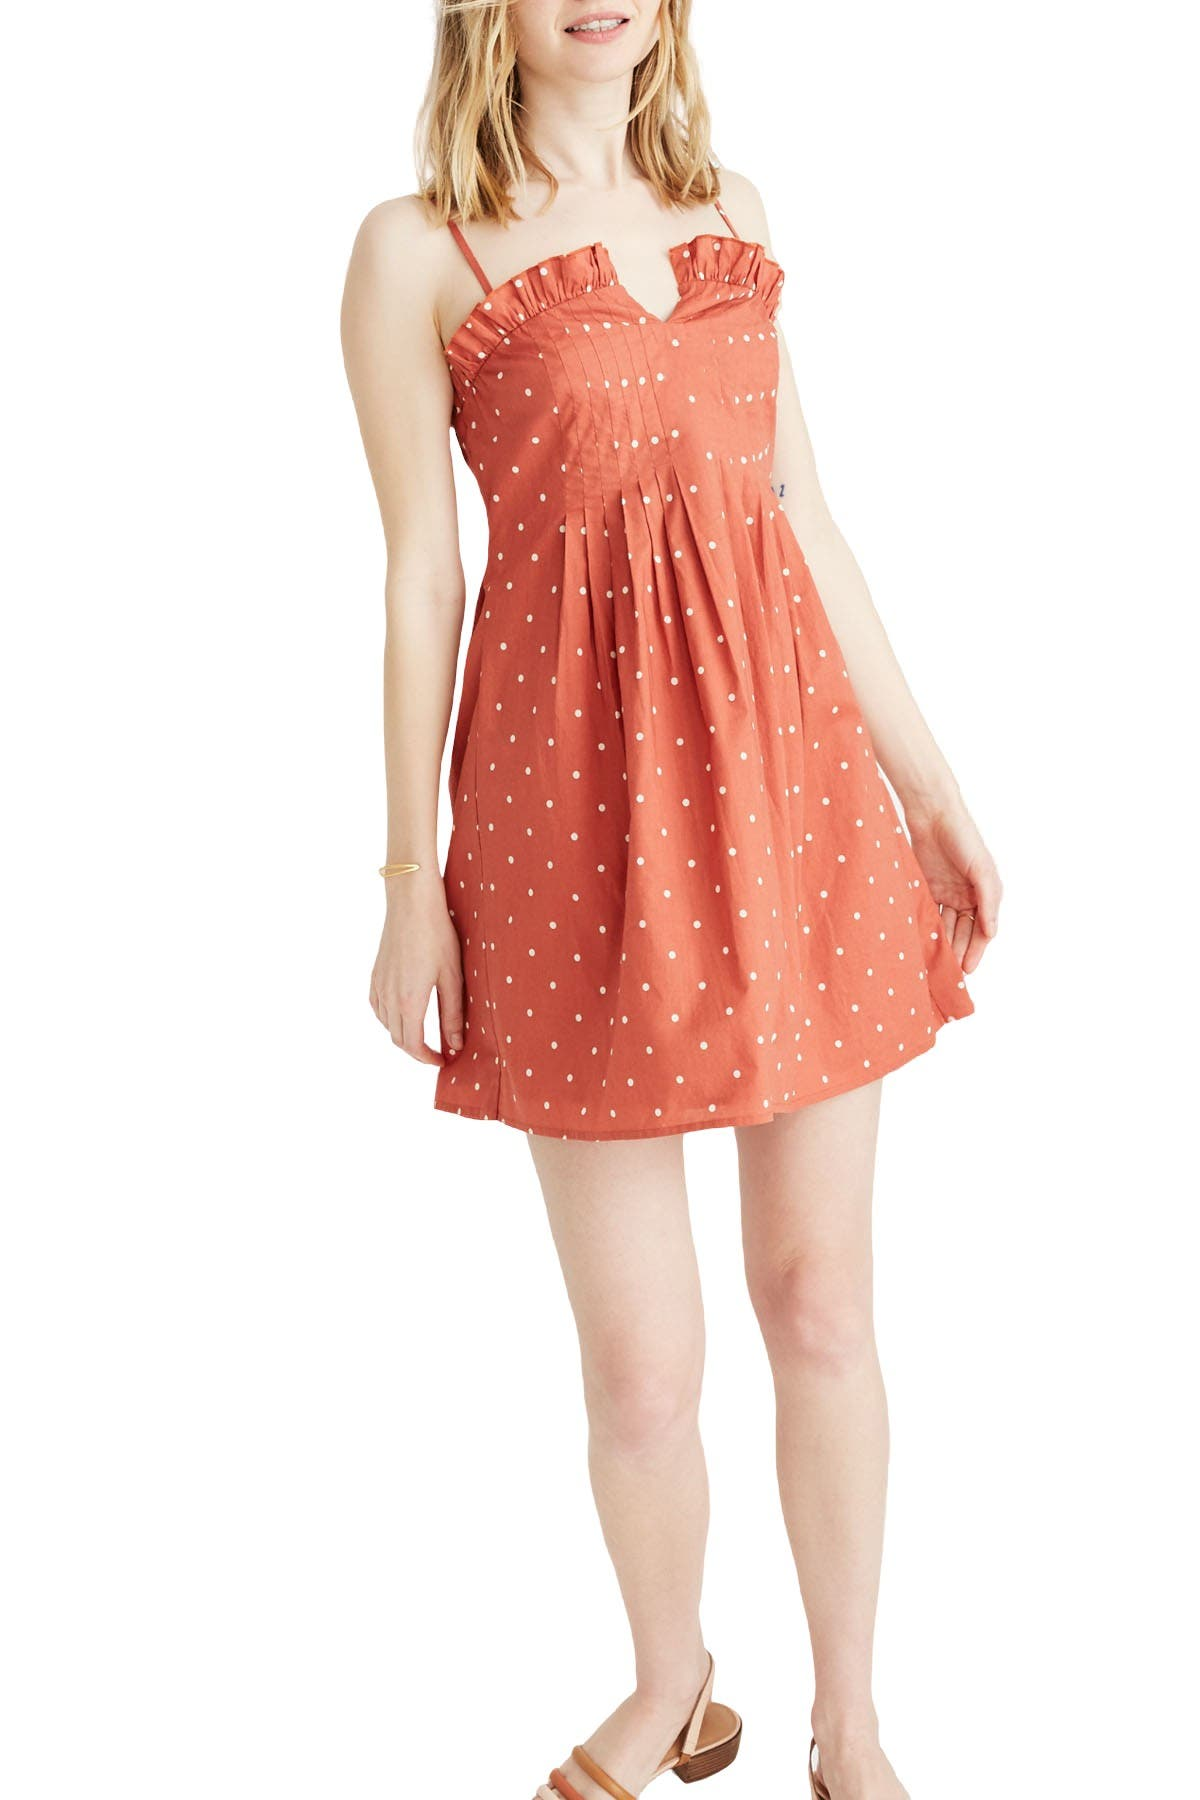 Image of Madewell Polka Dot Pintuck Cami Dress